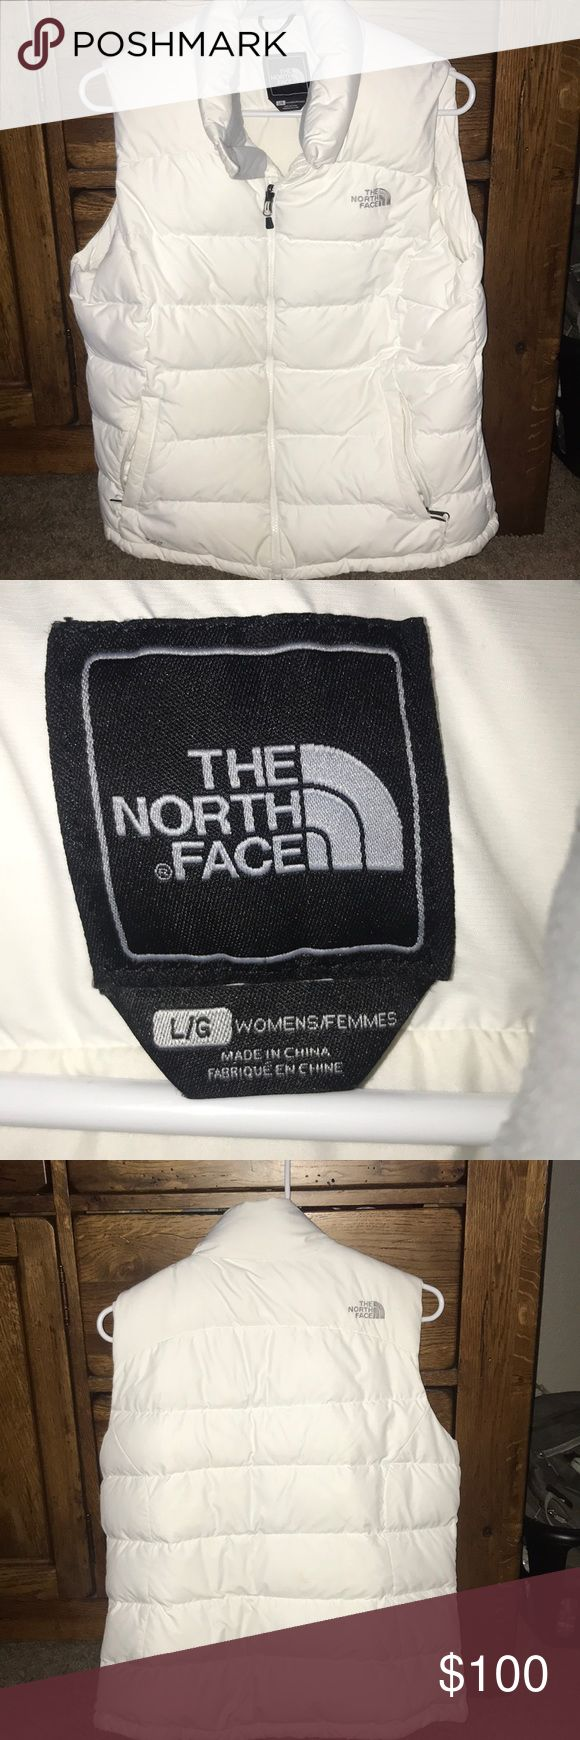 White North Face Vest Size Large Still in great condition. White with gray fleece in the collar and gray north face embellishment. Two zip pockets and a zip pocket in the inside near collar. Open to offers! North Face Jackets & Coats Vests